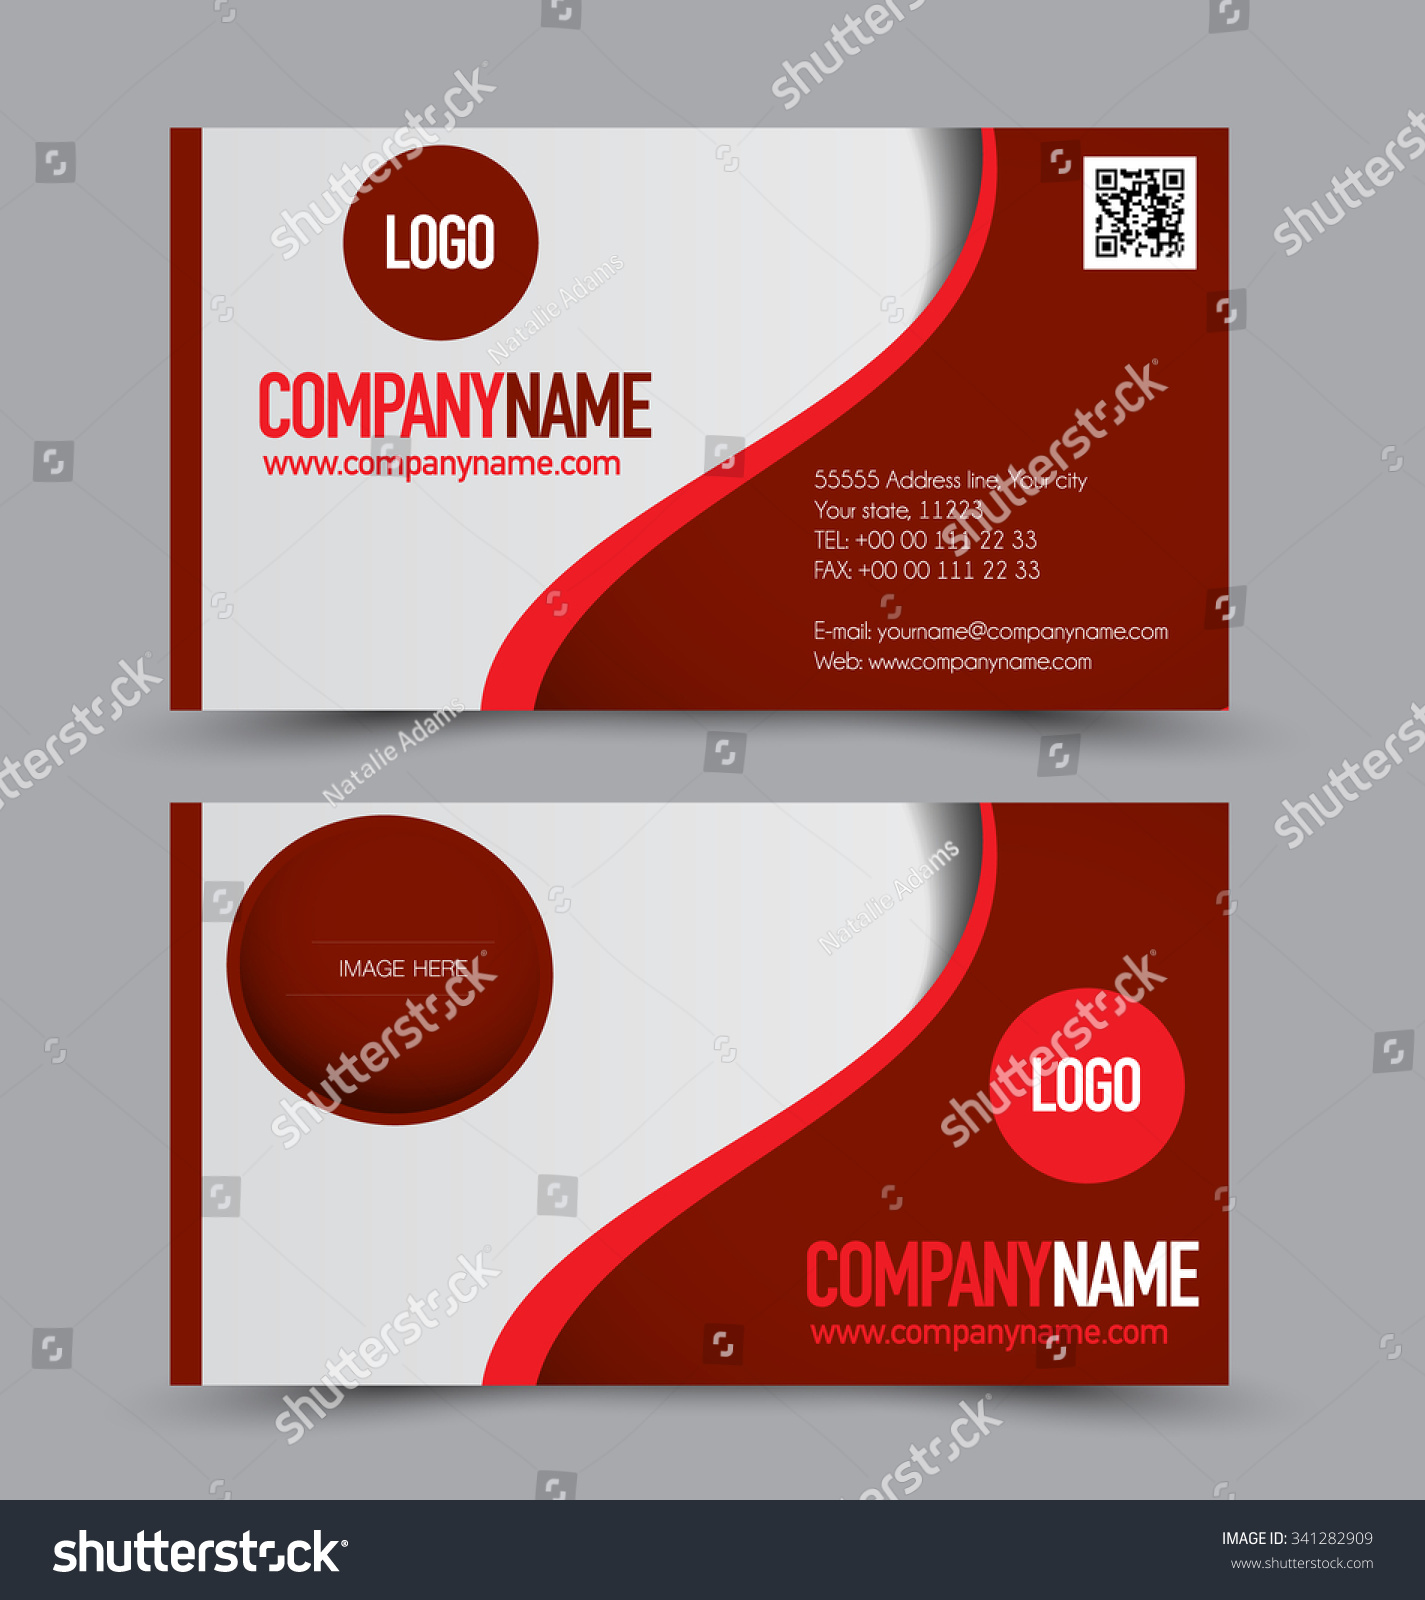 Labels for business cards images free business cards labels for business cards images free business cards labels for business cards image collections free business magicingreecefo Images